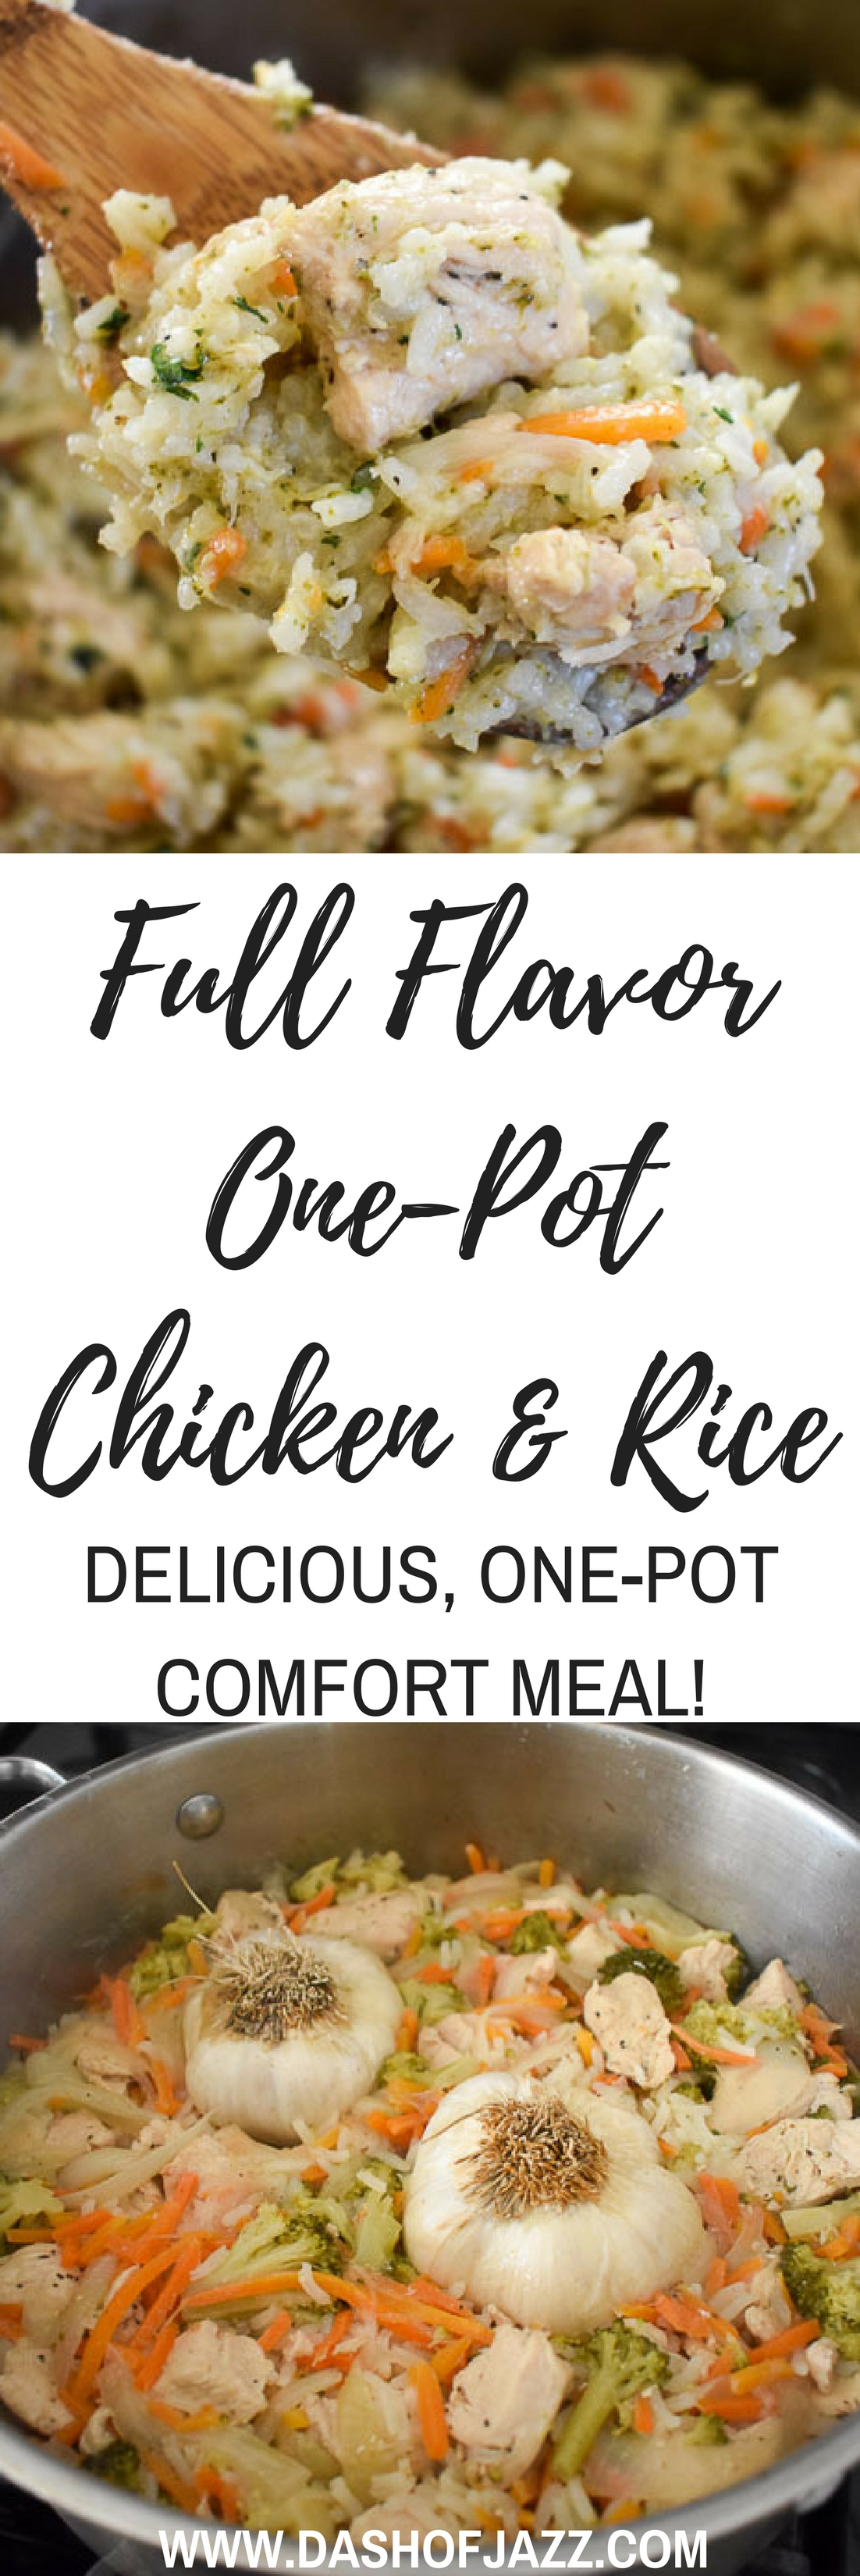 Look to this delicious, creamy one-pot chicken & rice dish when you want comfort food that's full of flavor and fun to make! Recipe by Dash of Jazz